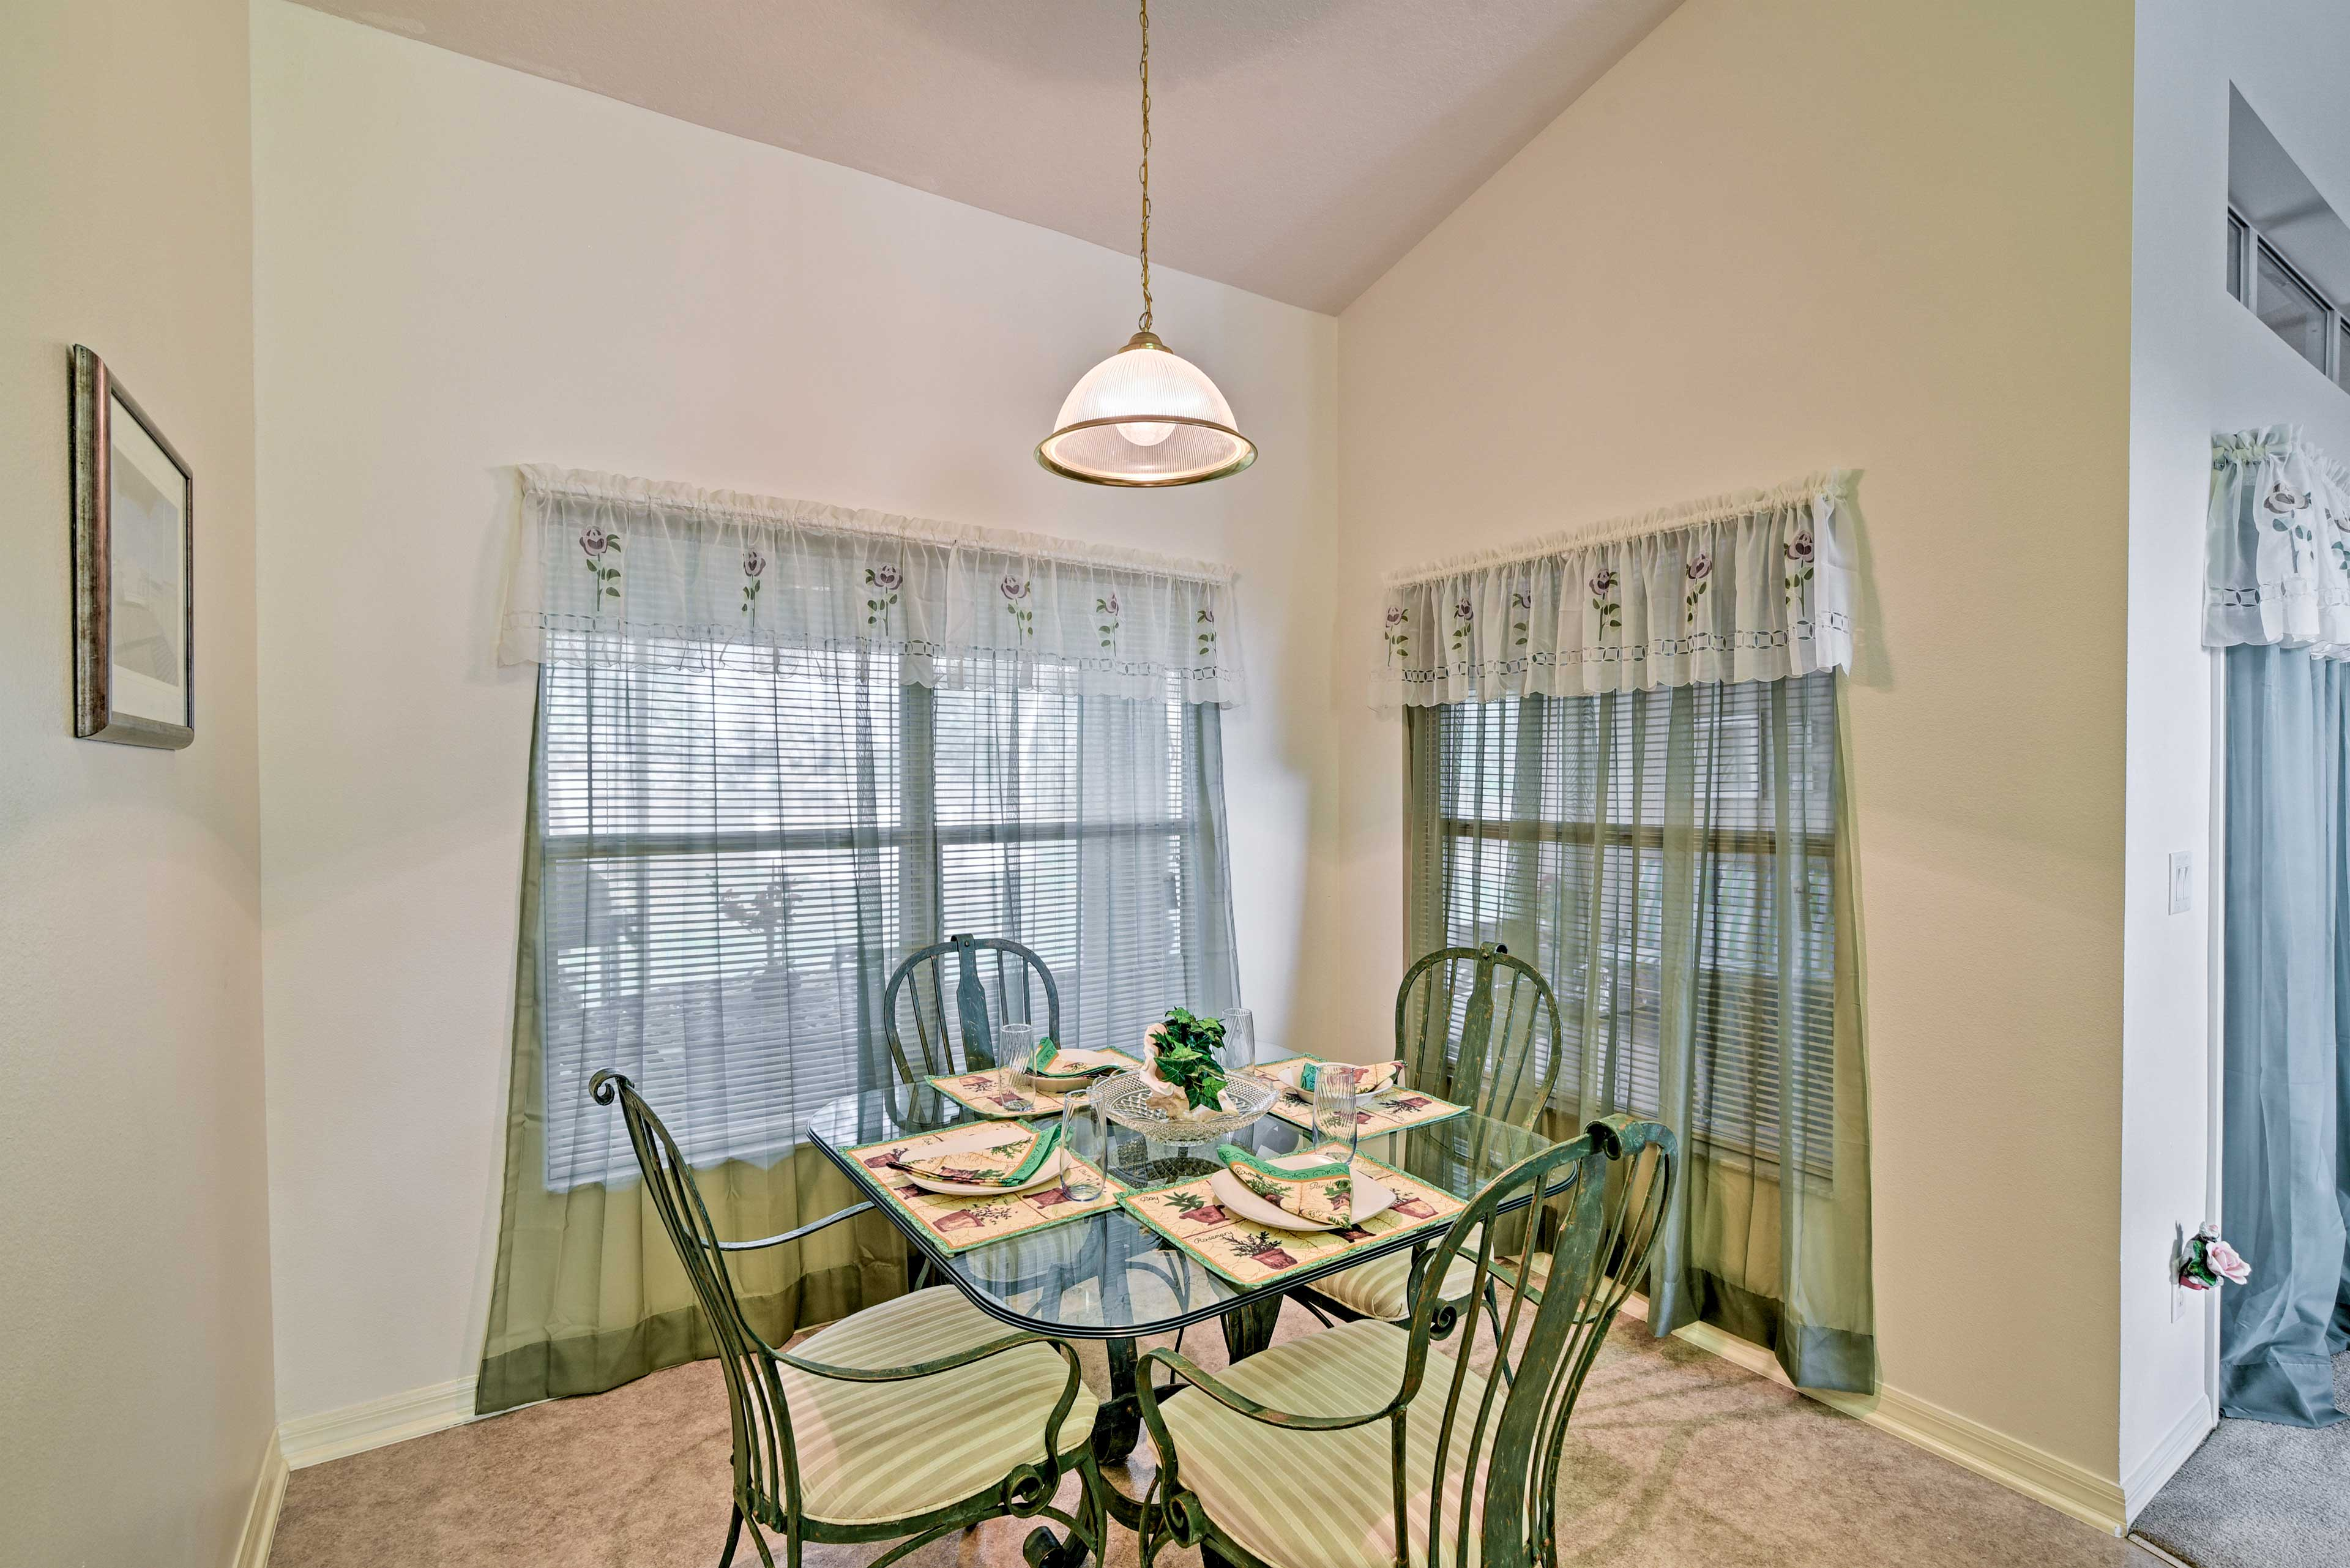 Share intimate meals at the breakfast nook with seating for 4.